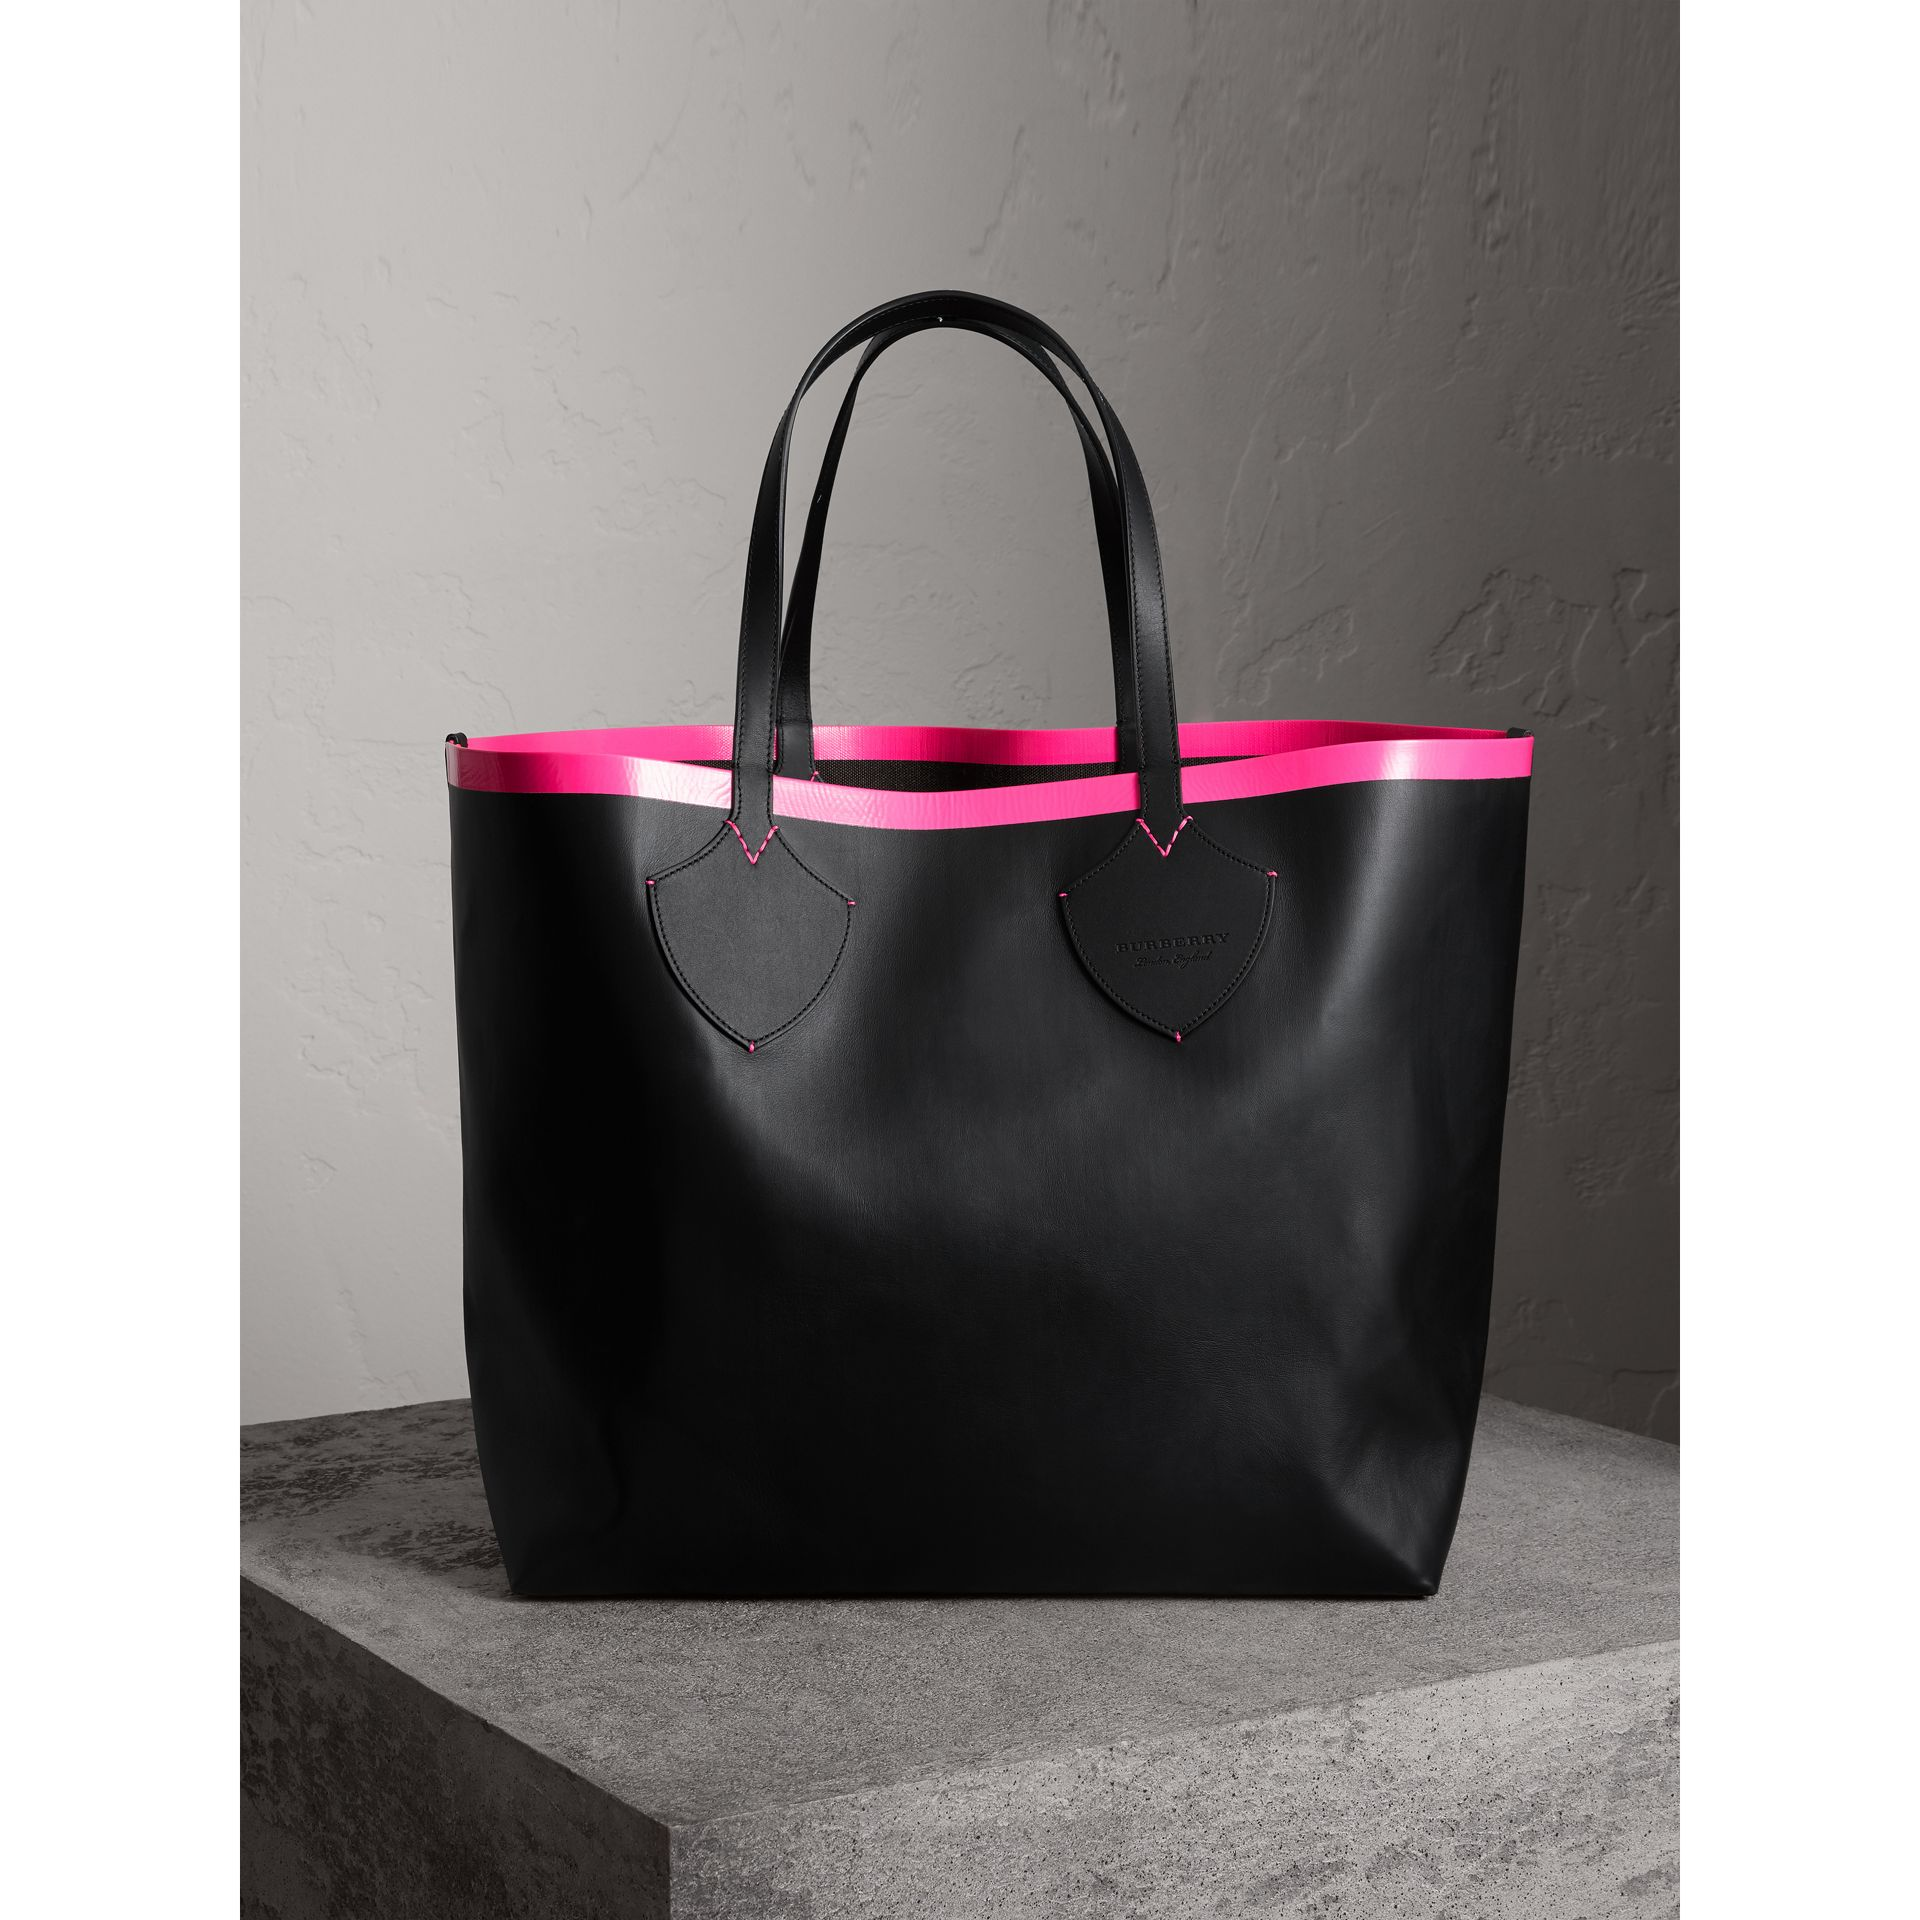 Sac tote The Giant réversible en cuir et coton Canvas check (Noir/rose Néon) | Burberry - photo de la galerie 5